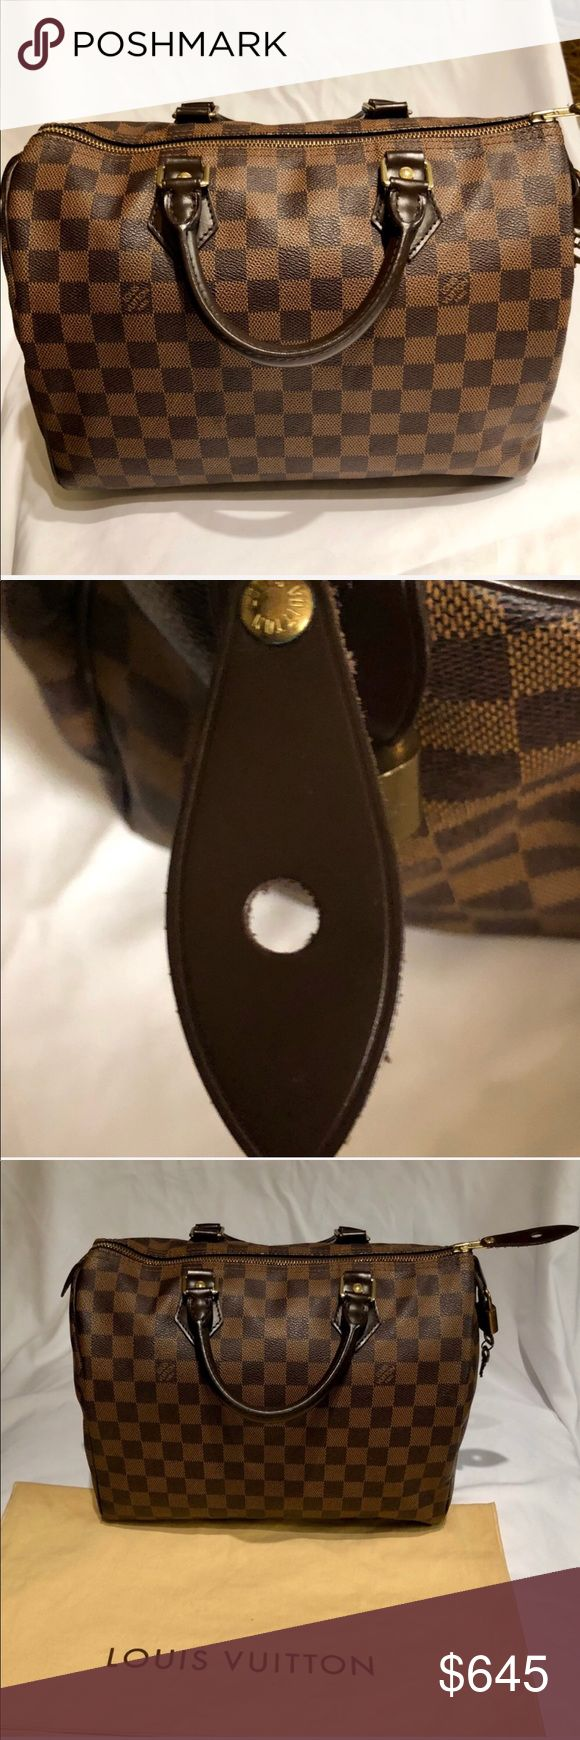 Louis Vuitton Speedy 25! Iconic 'Speedy 25' handbag.Damier canvas, leather trimmed, gold colored metallic pieces,red textile lining. Exterior is in excellent condition with only a couple exterior scuffs pictured. Interior has a few stains due to lotion leaking I did my best to clean it gently so it has some water stains of where I cleaned.  It's only on the bottom interior. I only used the purse a handful of times it's practically new.  The outside looks amazing. Louis Vuitton Bags Totes